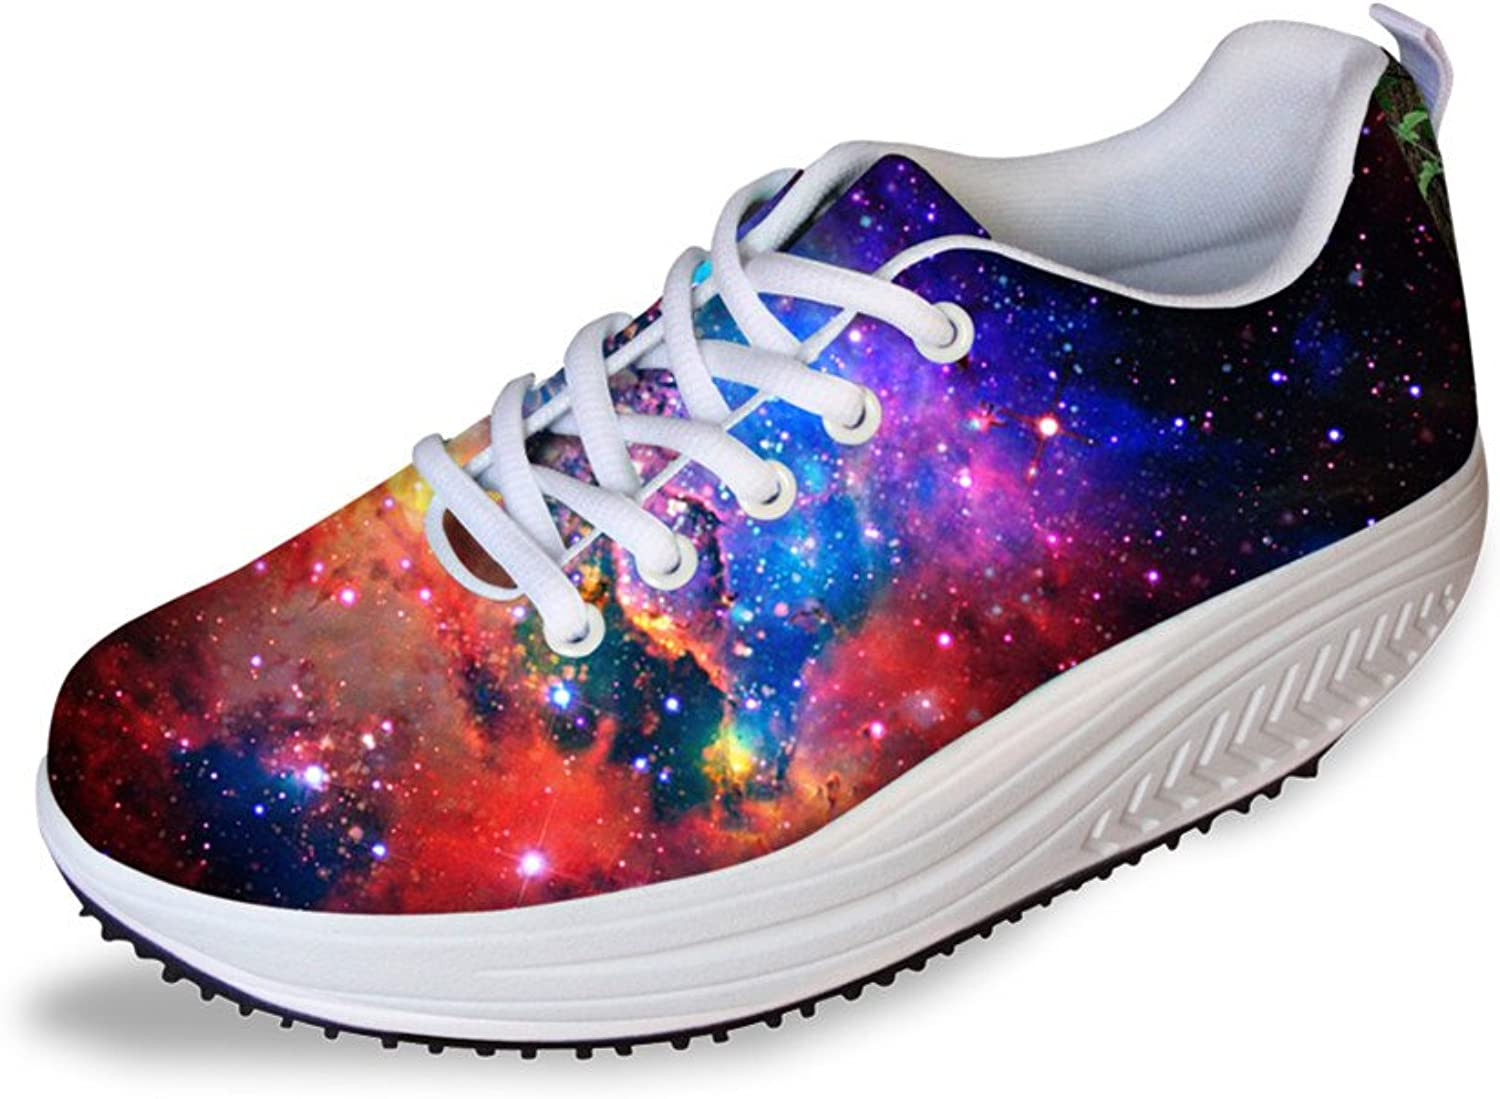 Women Galaxy Platform Walking shoes 3D Wedge shoes Lace Up Sneakers Breathable Casual Ladies Medium Heel